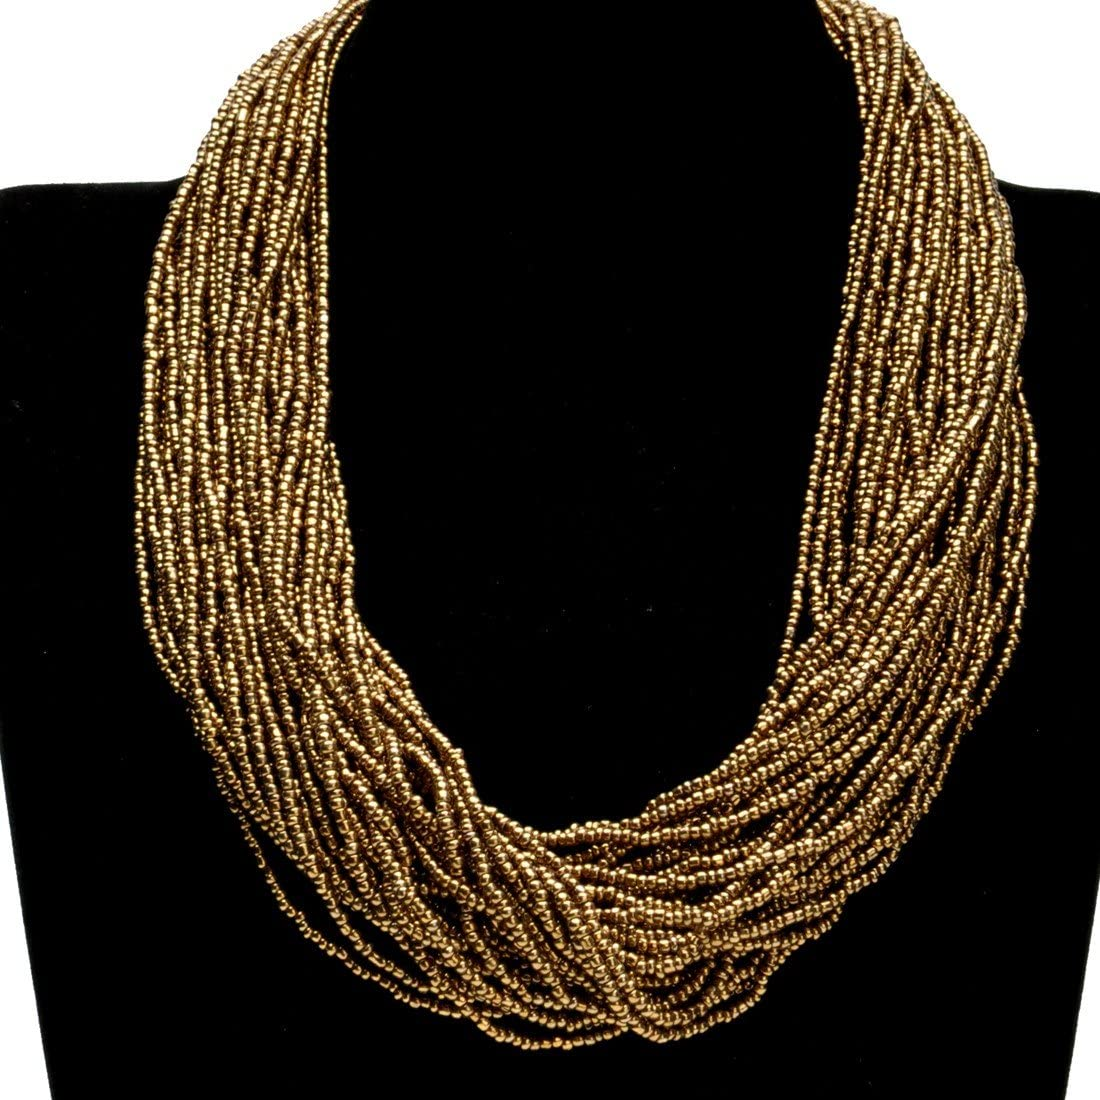 Fashion Multilayer Seed Bead Chain Choker Collar Necklace Earrings Set Cluster Strand Handmade Bib Statement Necklace